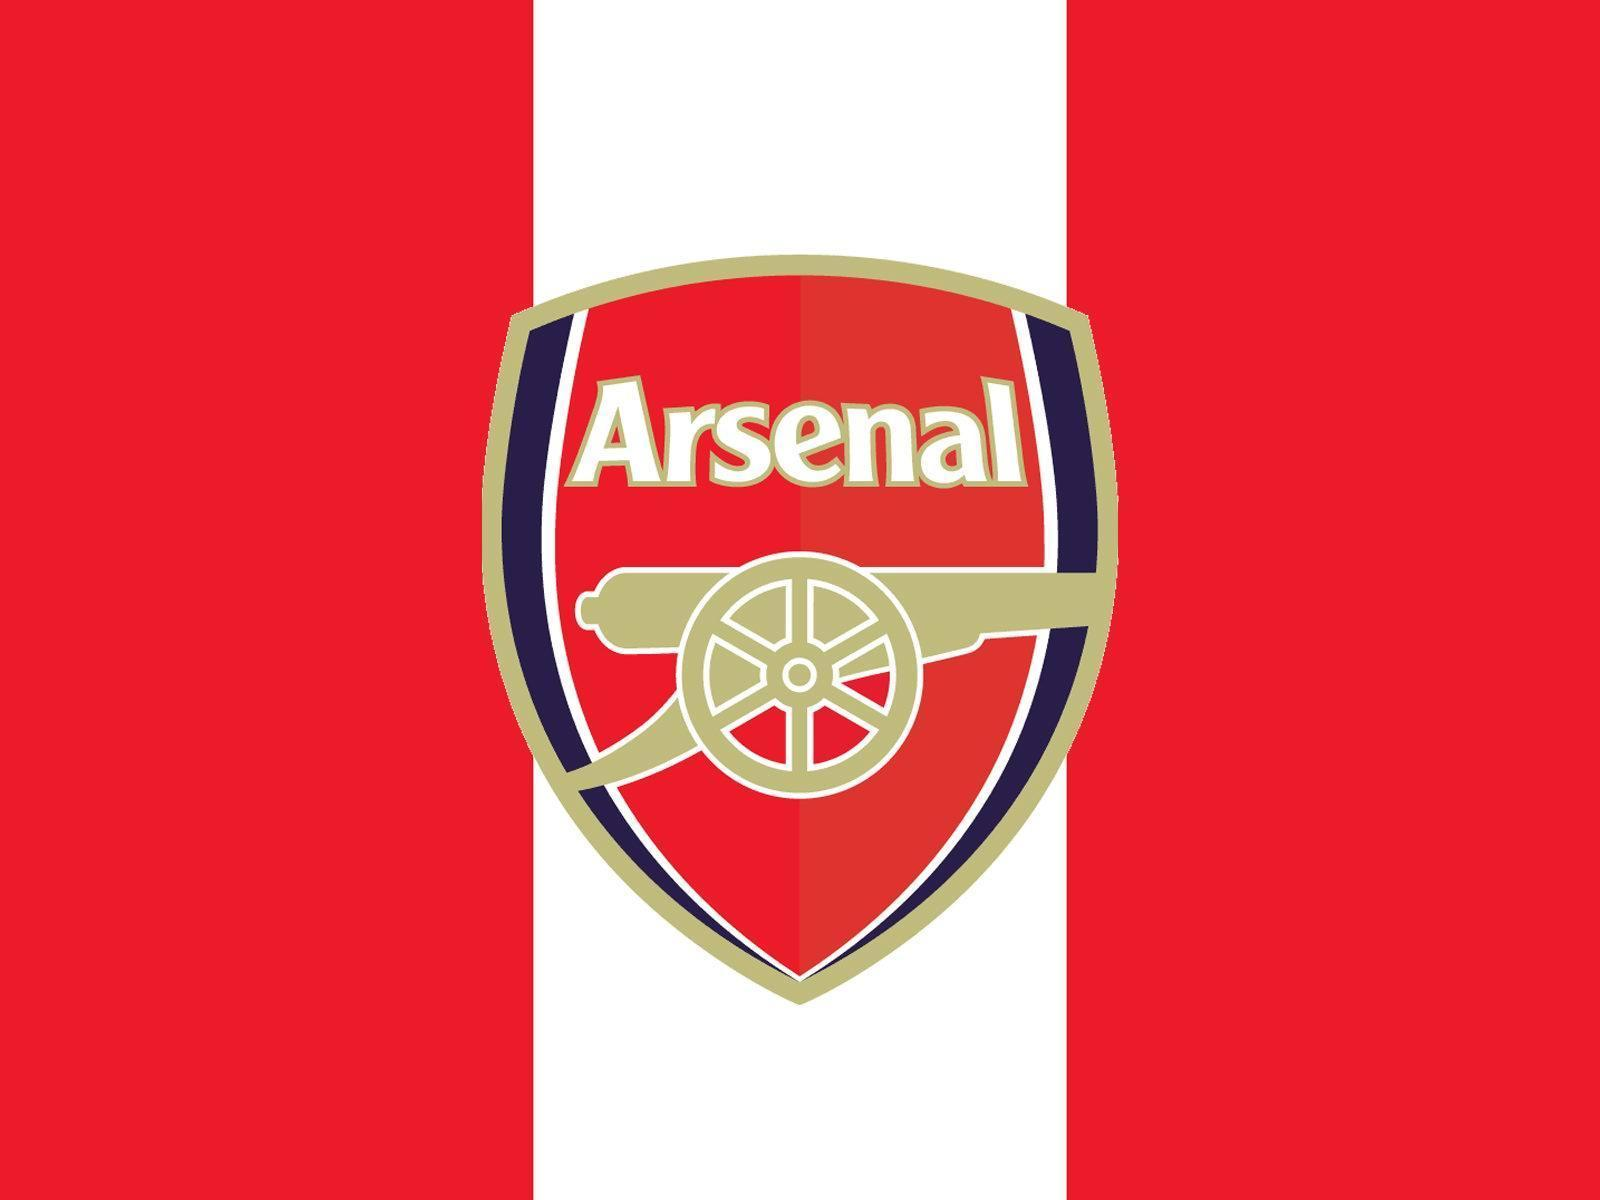 Arsenal Fc Logo: Arsenal Logo Wallpapers 2015